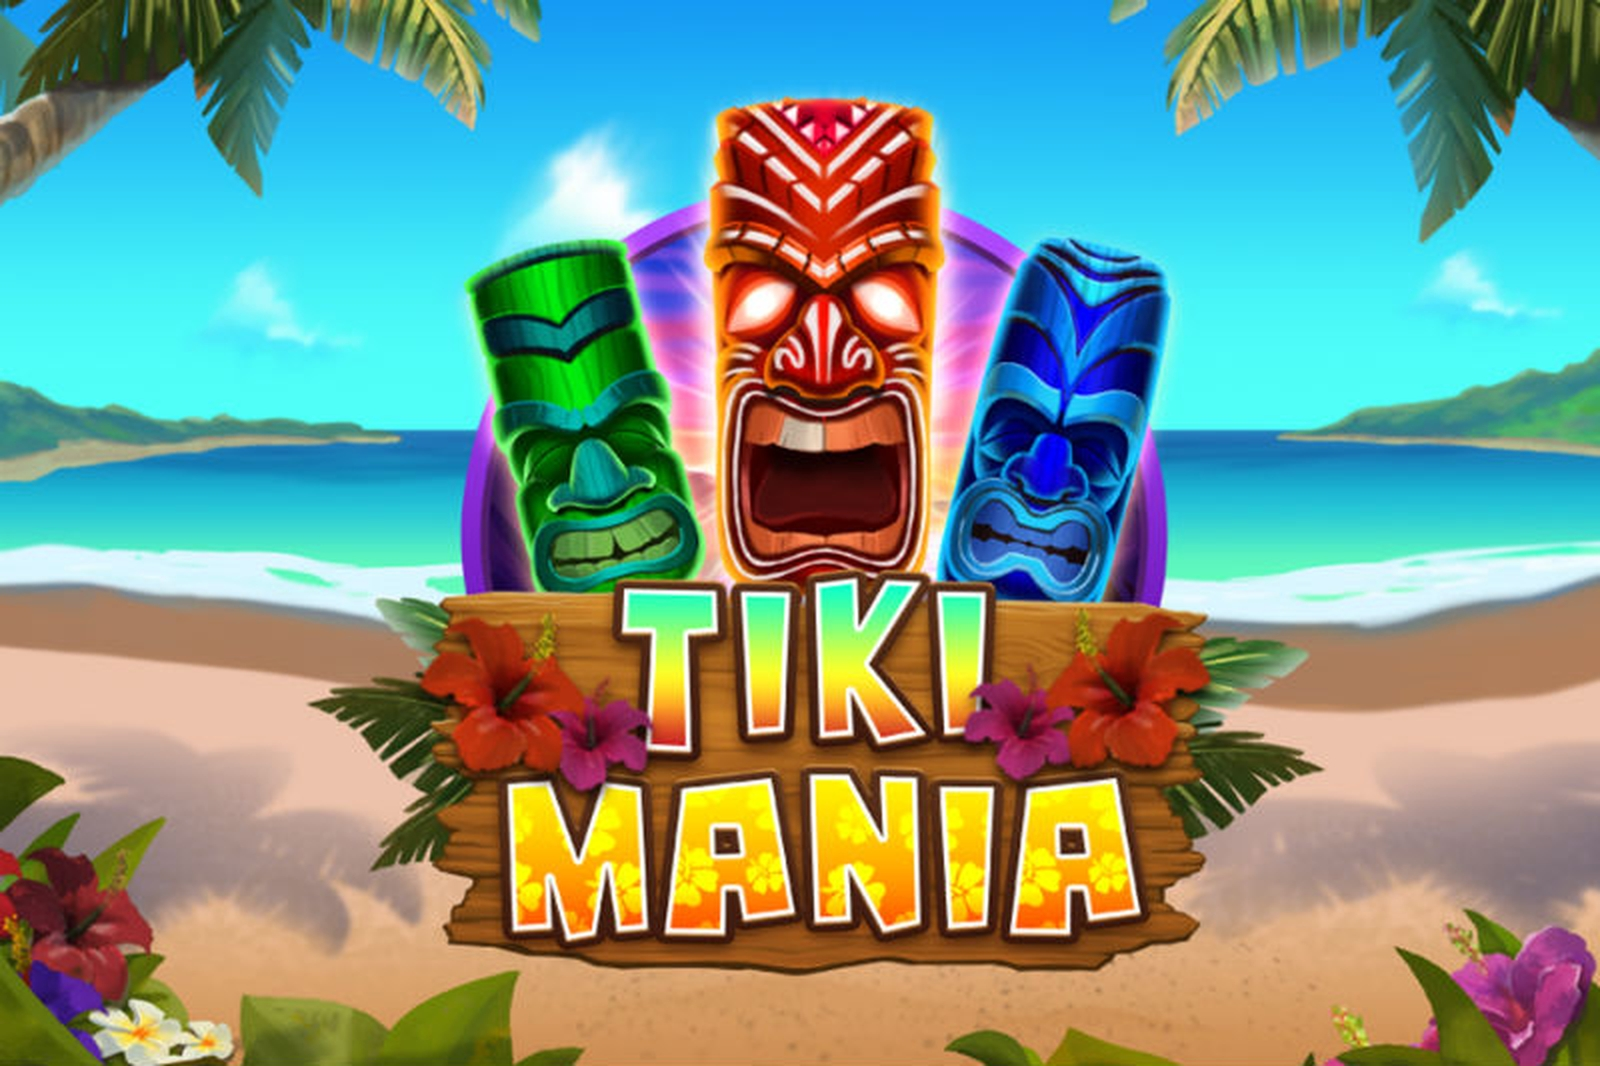 The Tiki Mania Online Slot Demo Game by Fortune Factory Studios